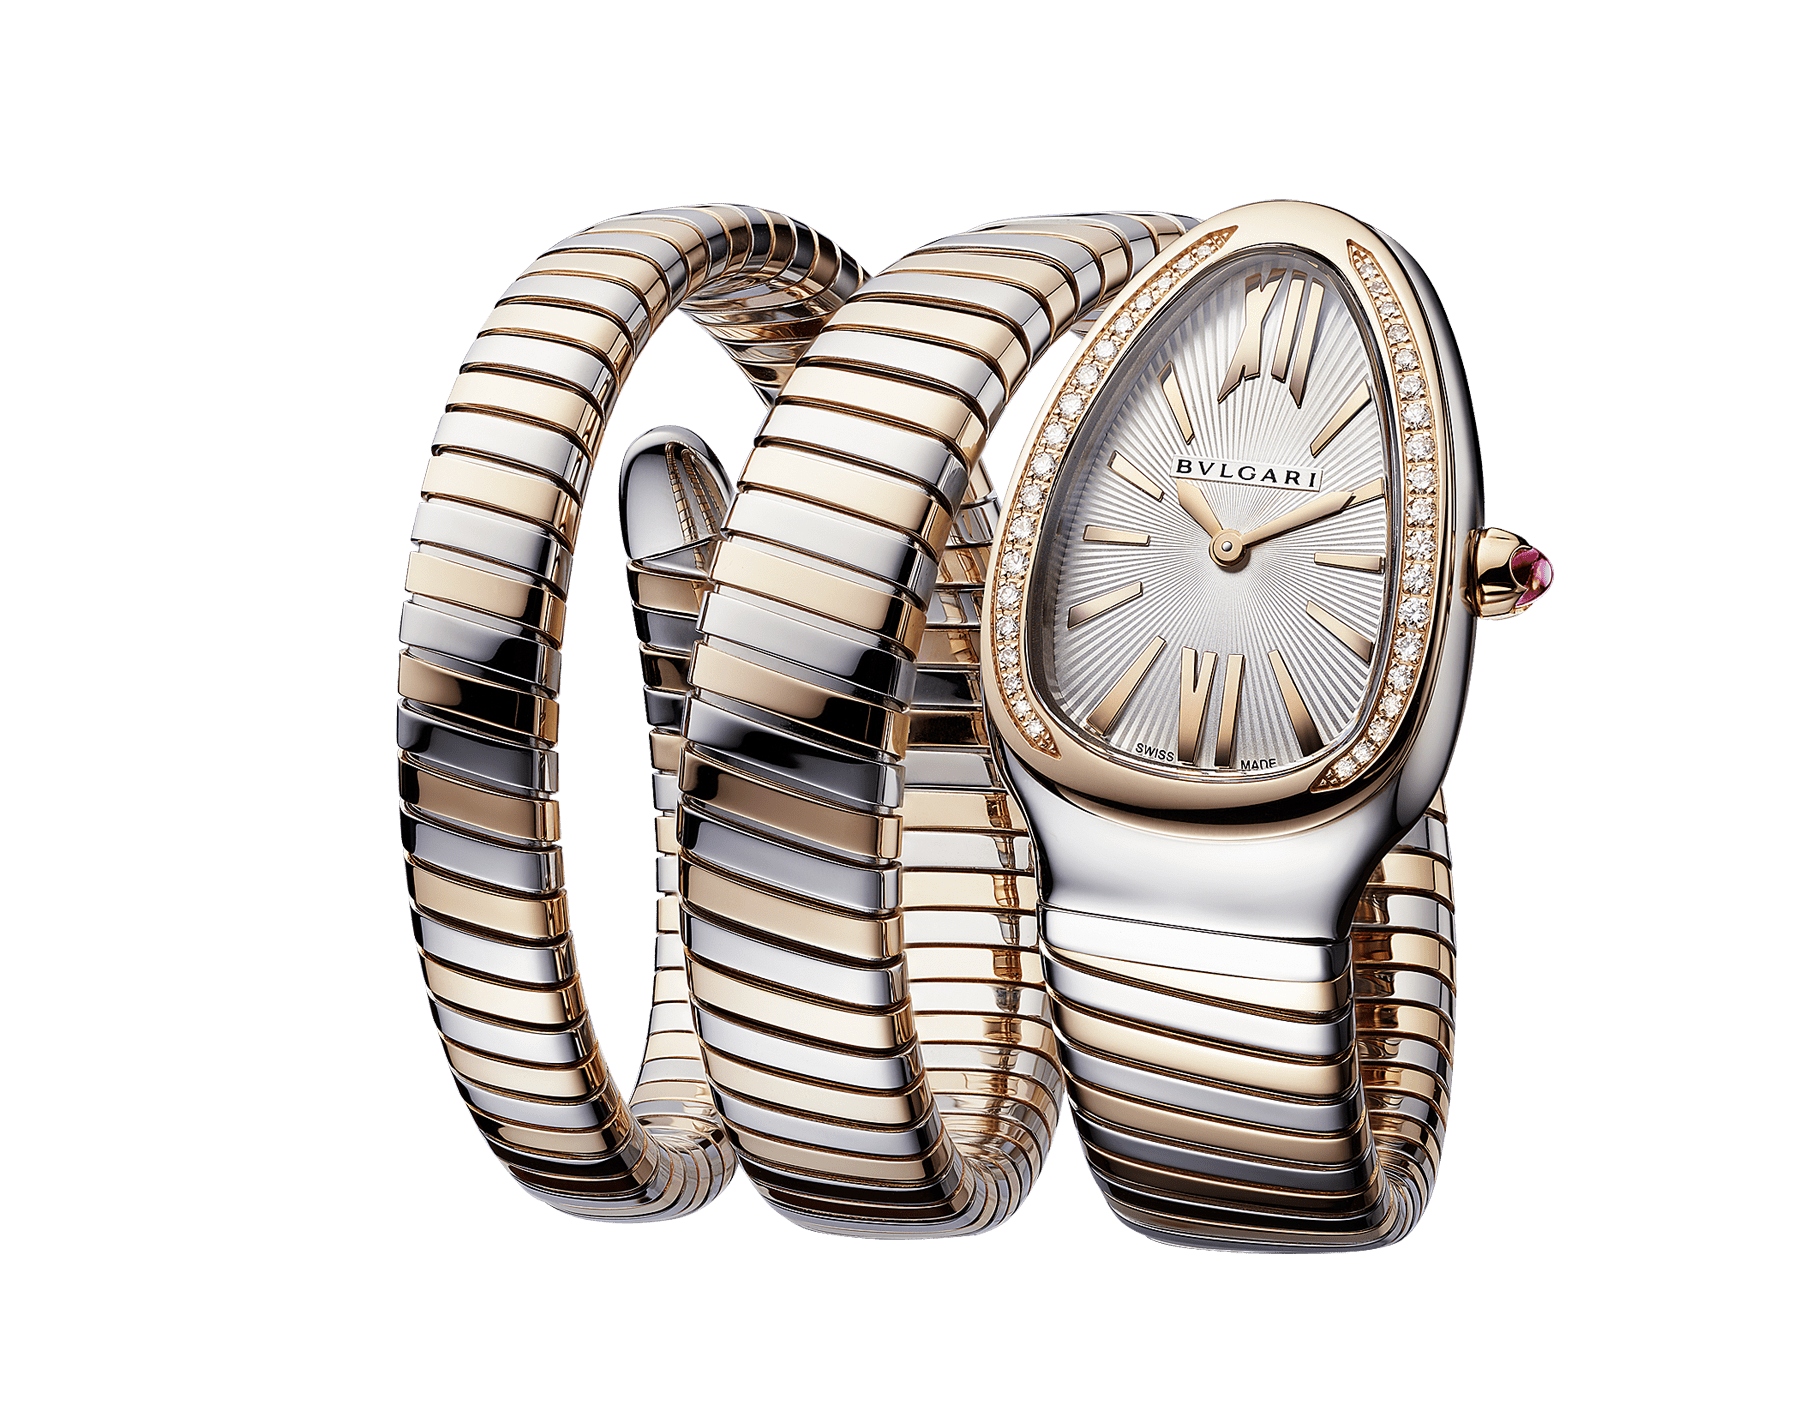 Serpenti Tubogas double spiral watch with stainless steel case, 18 kt rose gold bezel set with diamonds, silver opaline dial with guilloché soleil treatment, stainless steel and 18 kt rose gold bracelet 103149 image 2